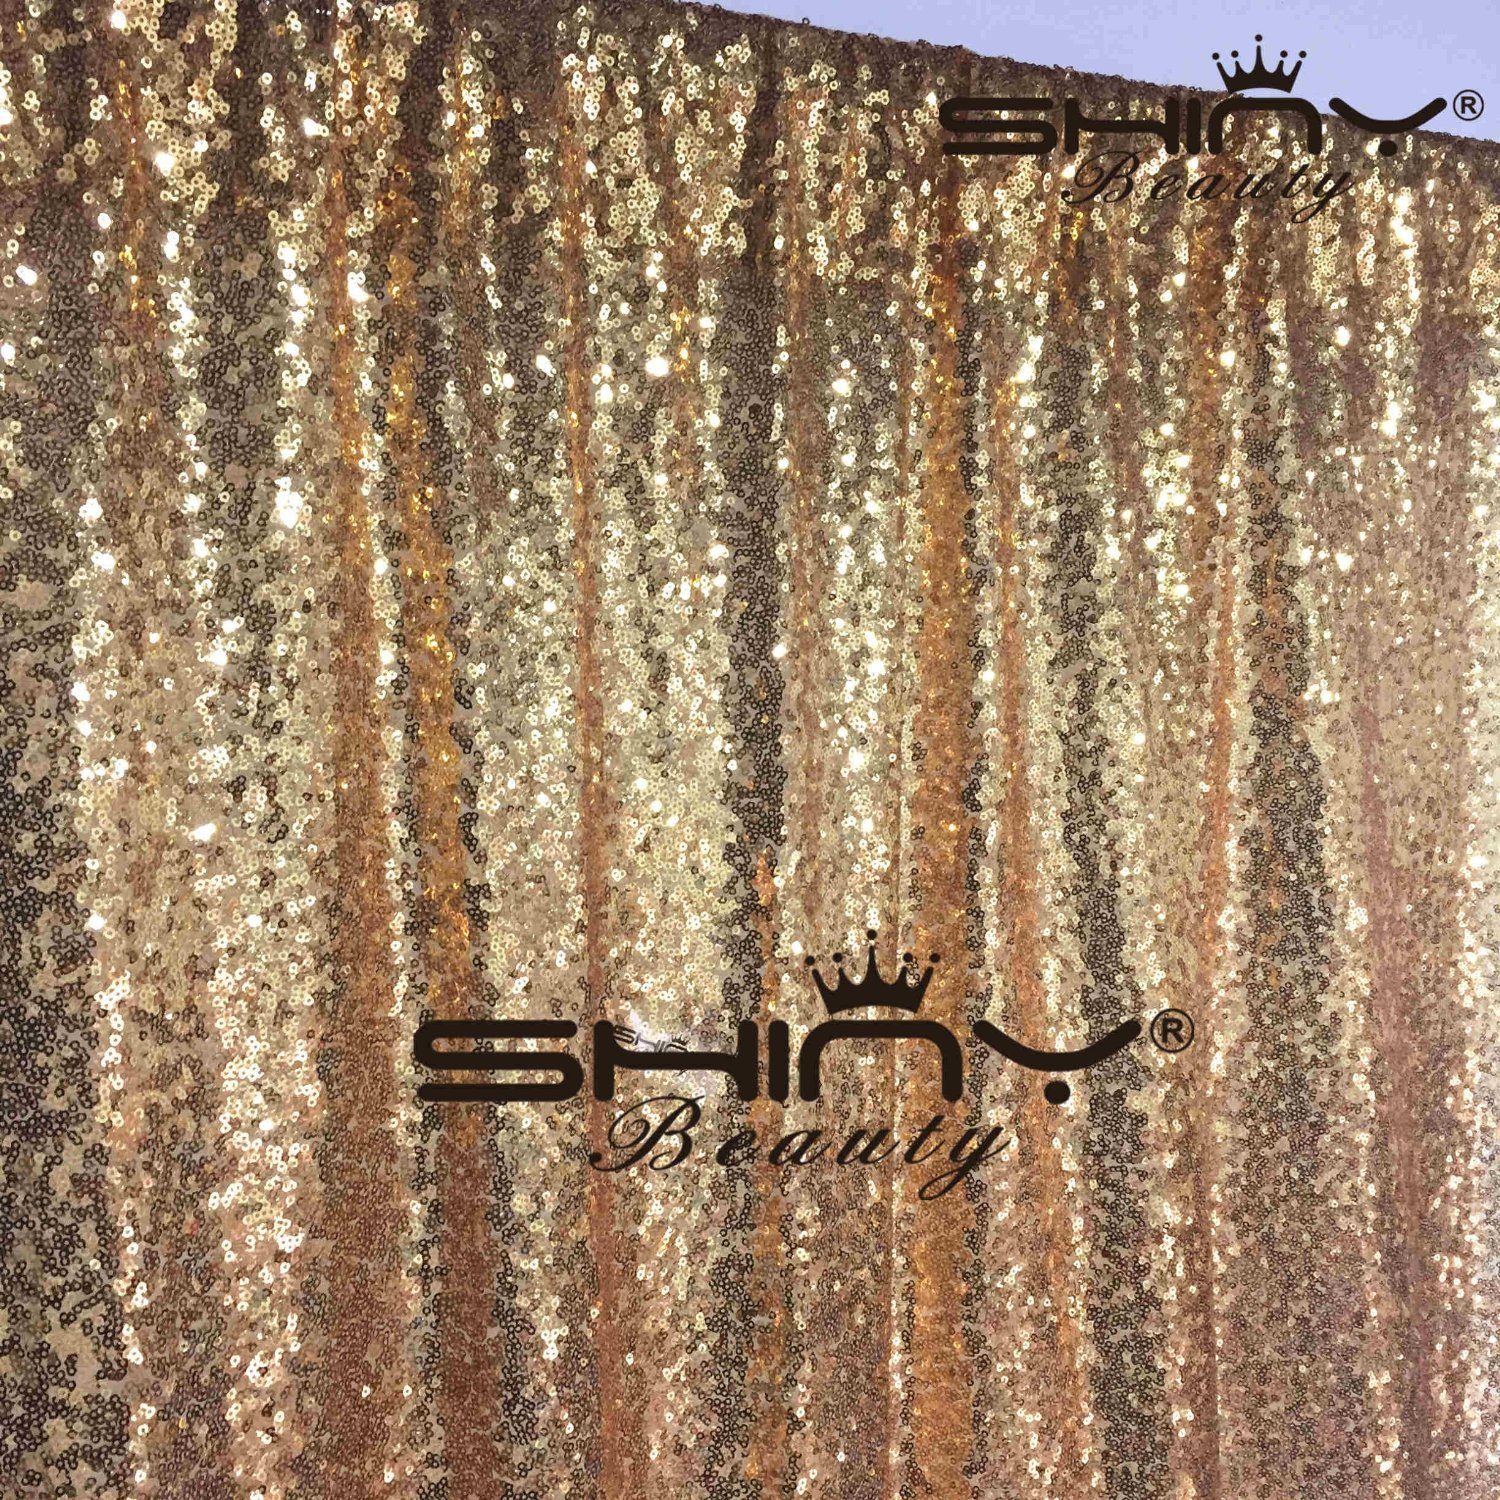 DUOBAO 4FTX15FT-Gold-Sequin Backdrop Photo Booth Background Sequin Curtain Sequin Photography For Xmas Decoration-Pack of 10 by DUOBAO